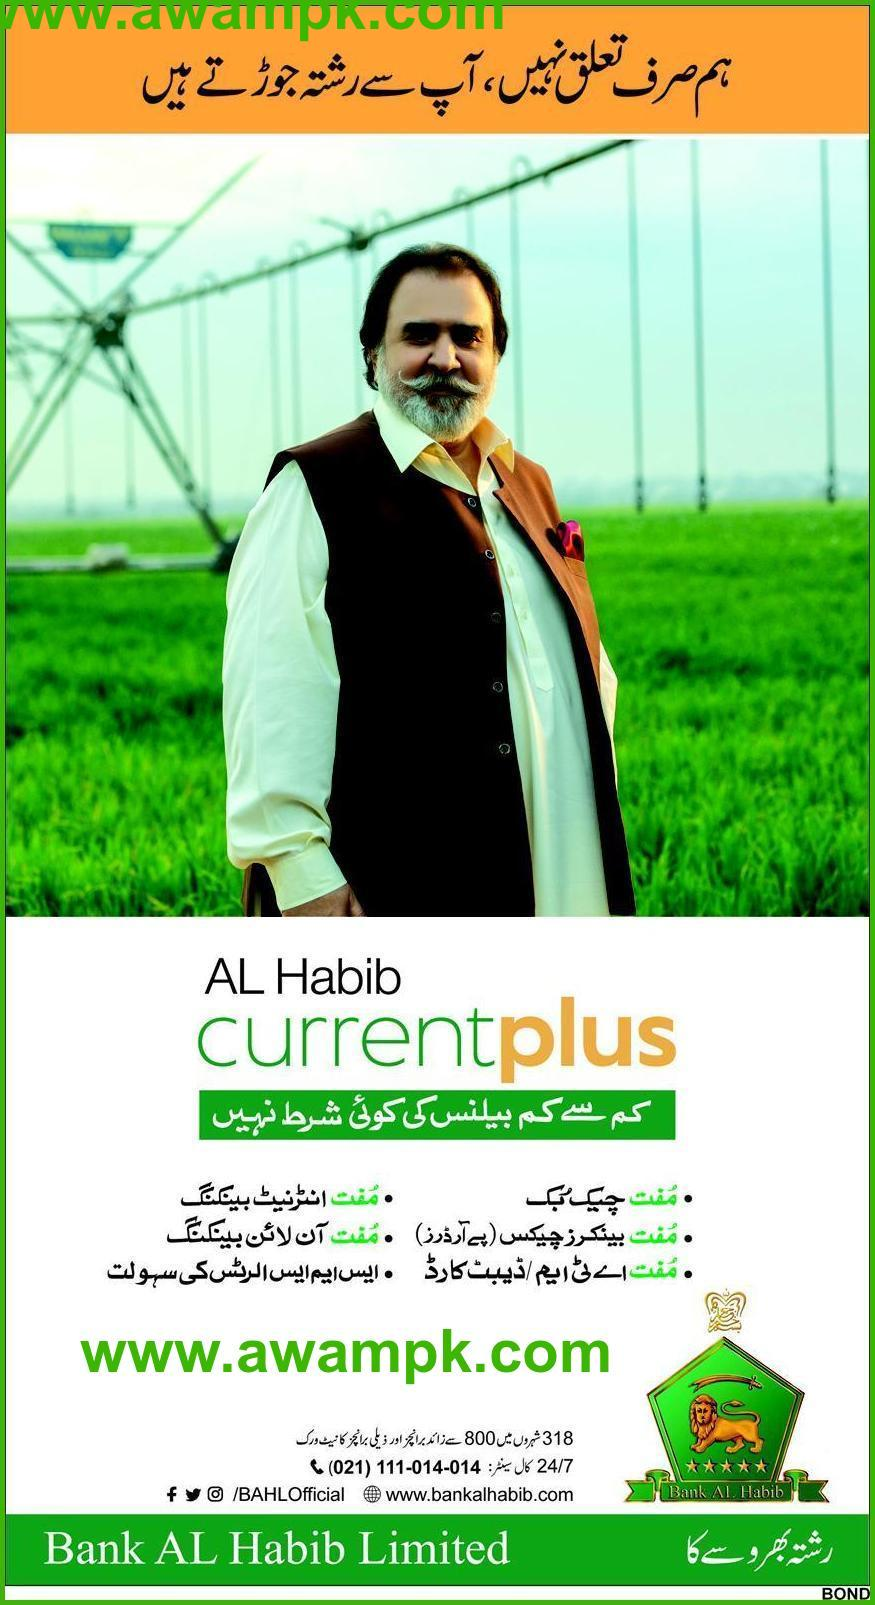 Al Habib Current Plus Account Eligibility, Benefits and Features